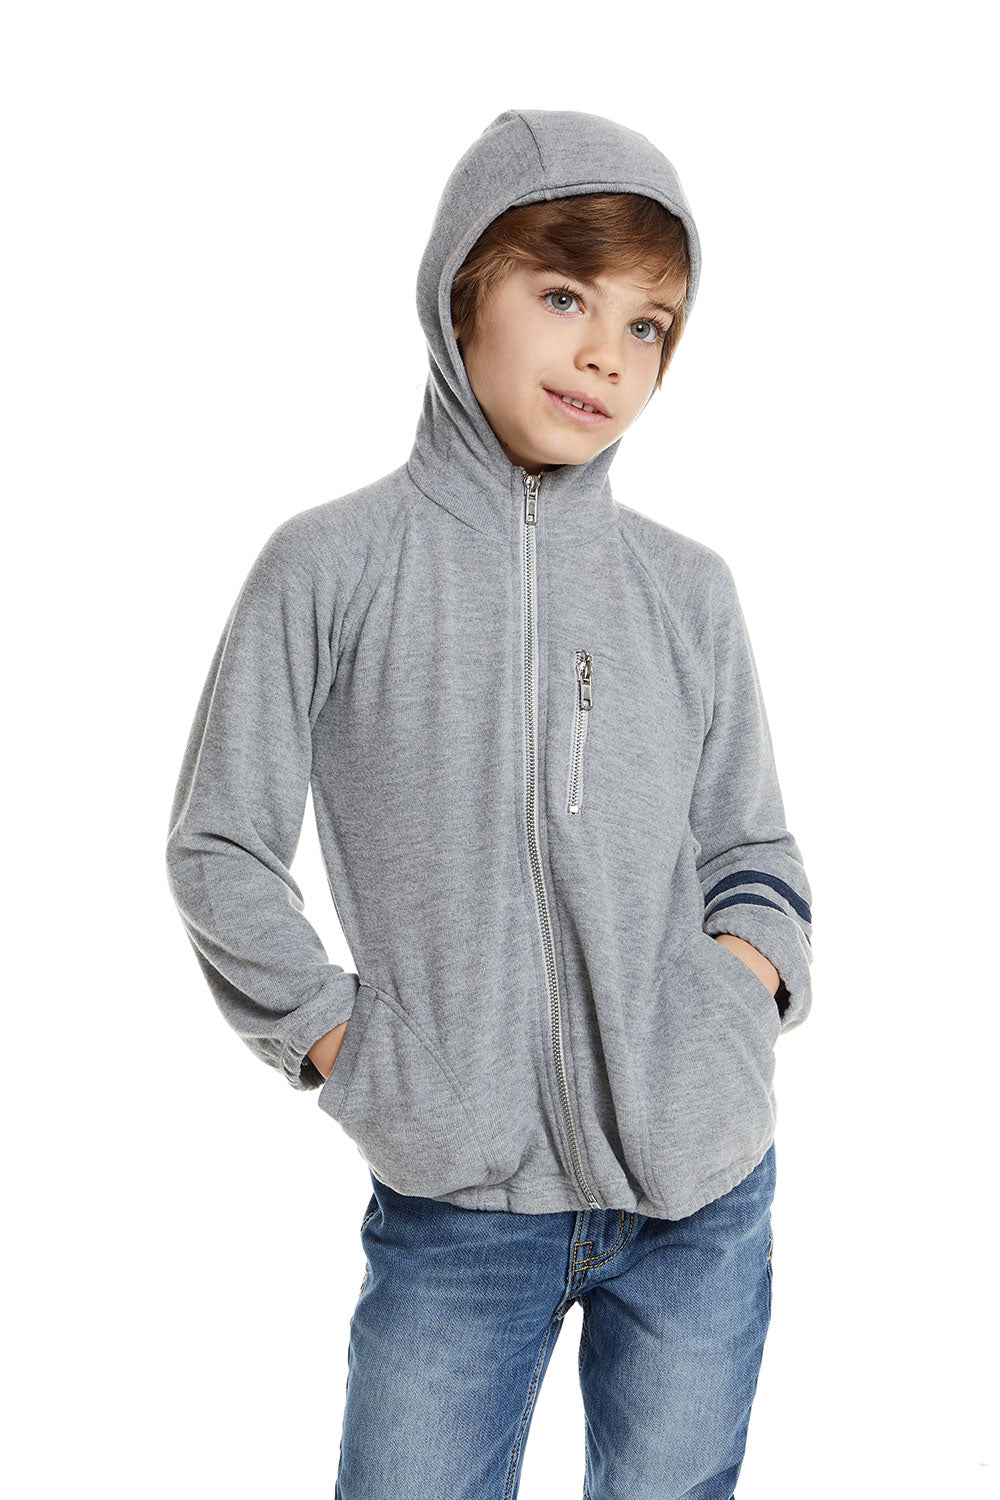 Boys Love Knit Long Sleeve Zip Up Hoodie with Strappings BOYS - chaserbrand